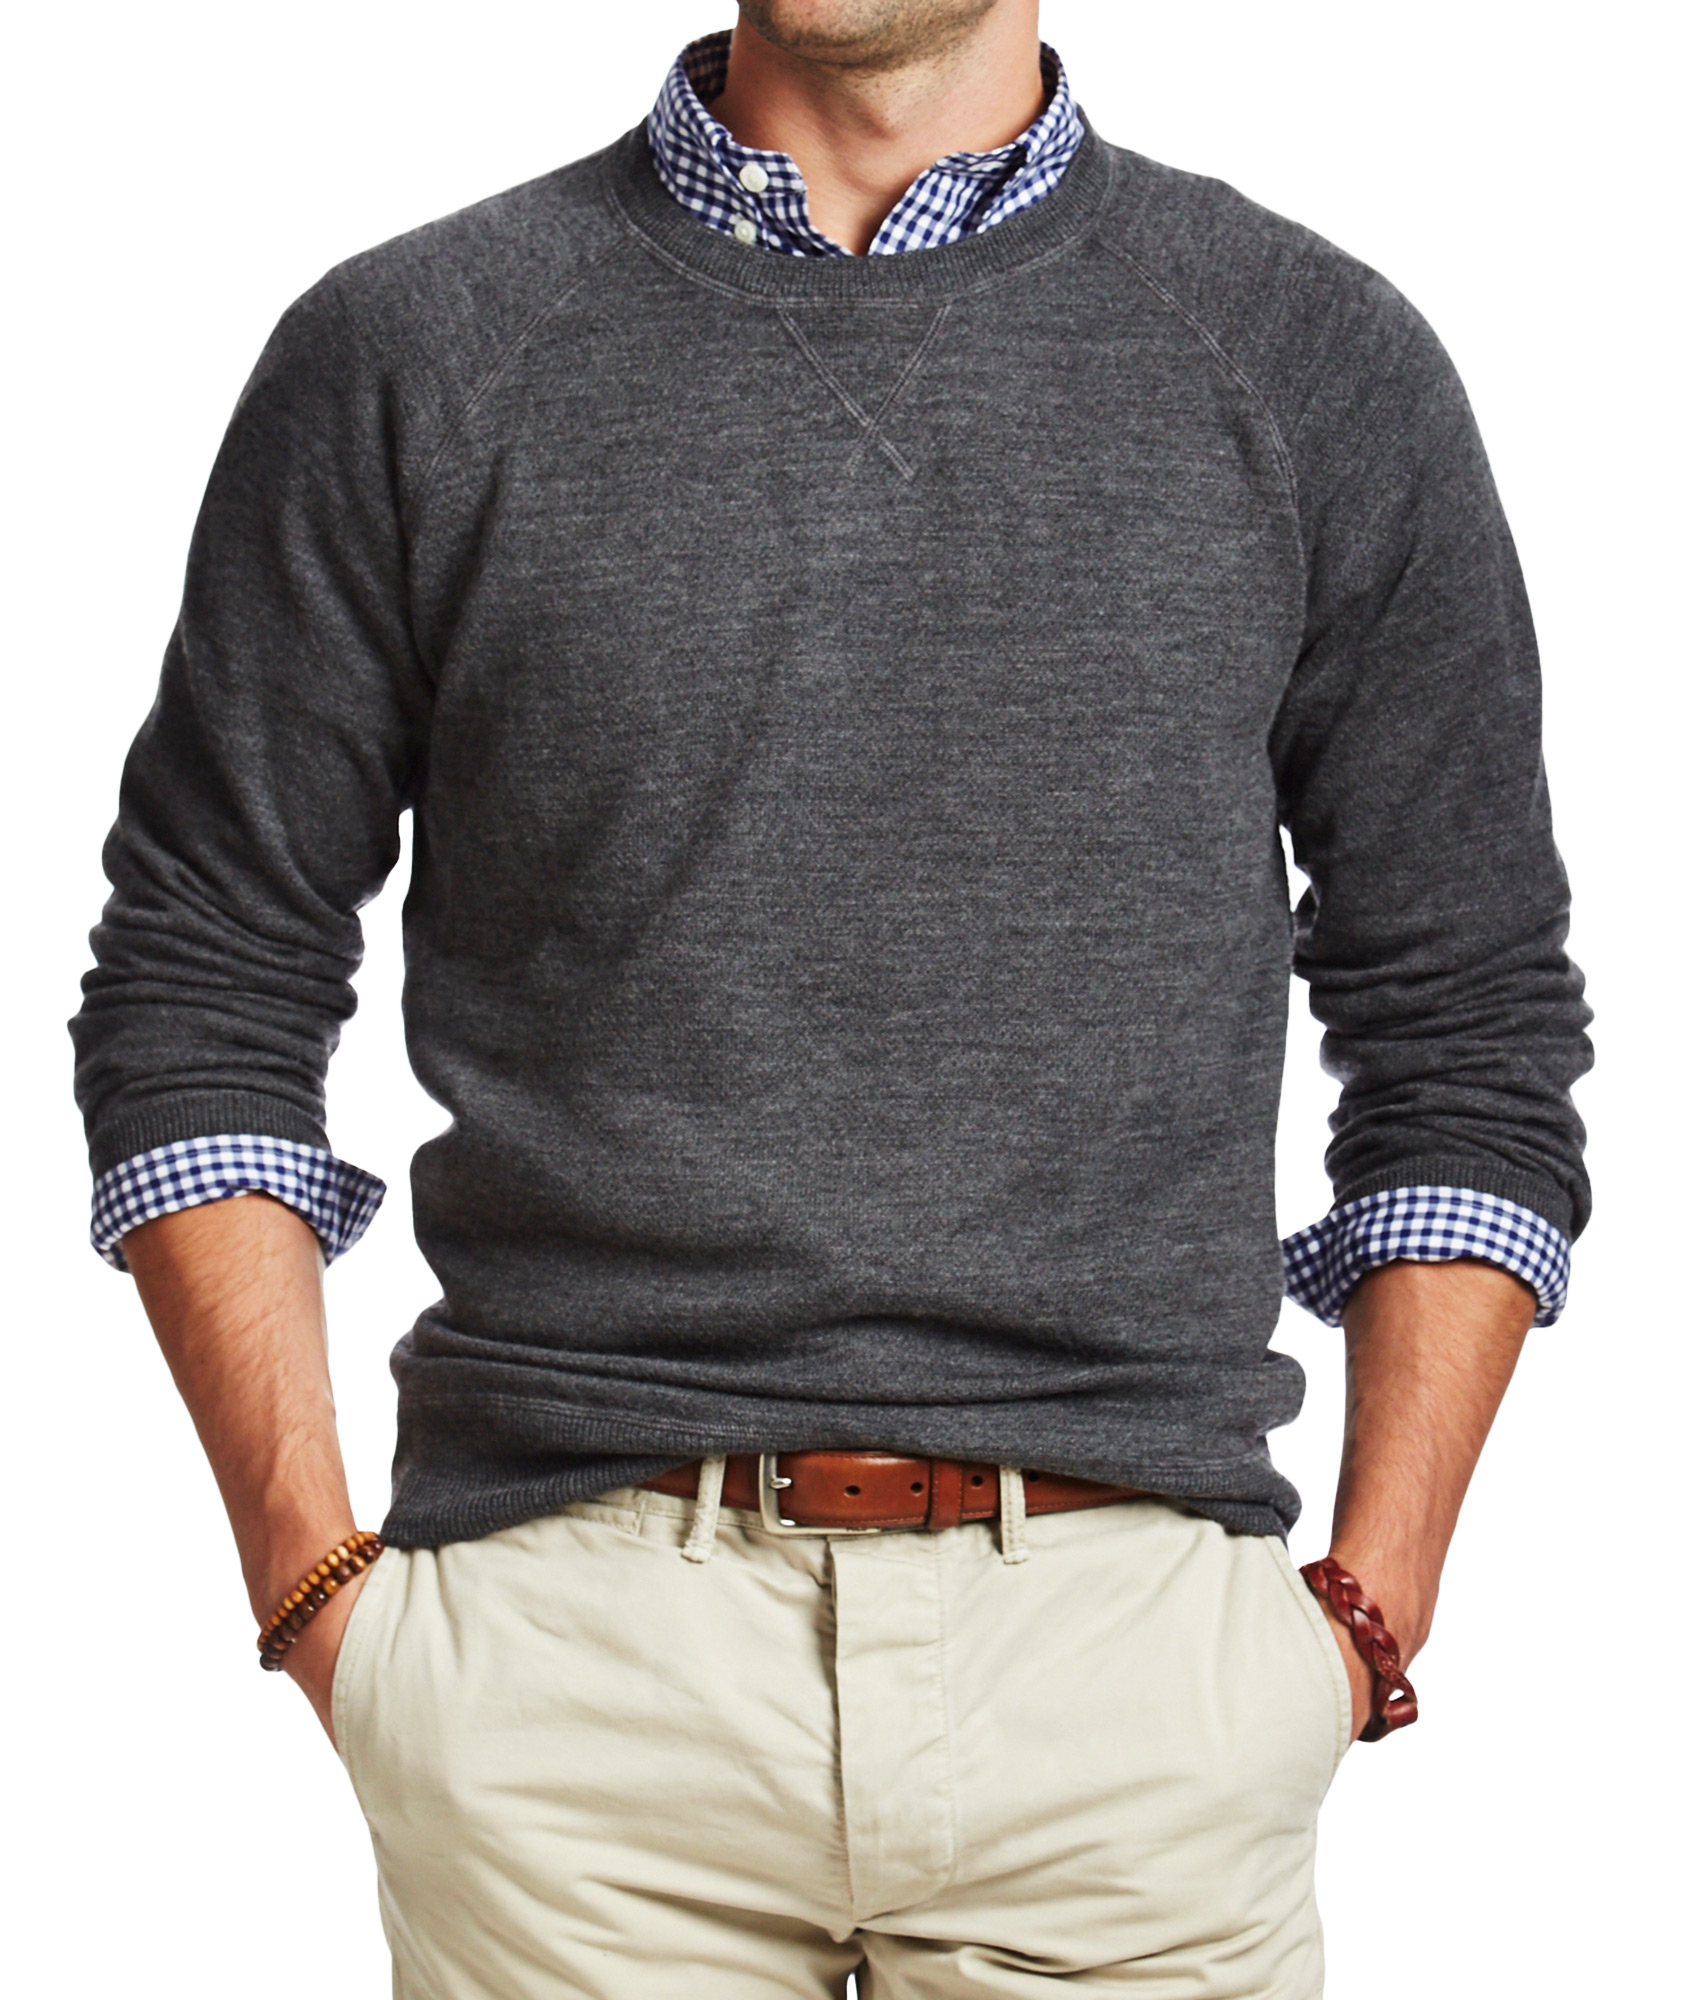 Roll Dress Shirt Sleeves With Sweater 31